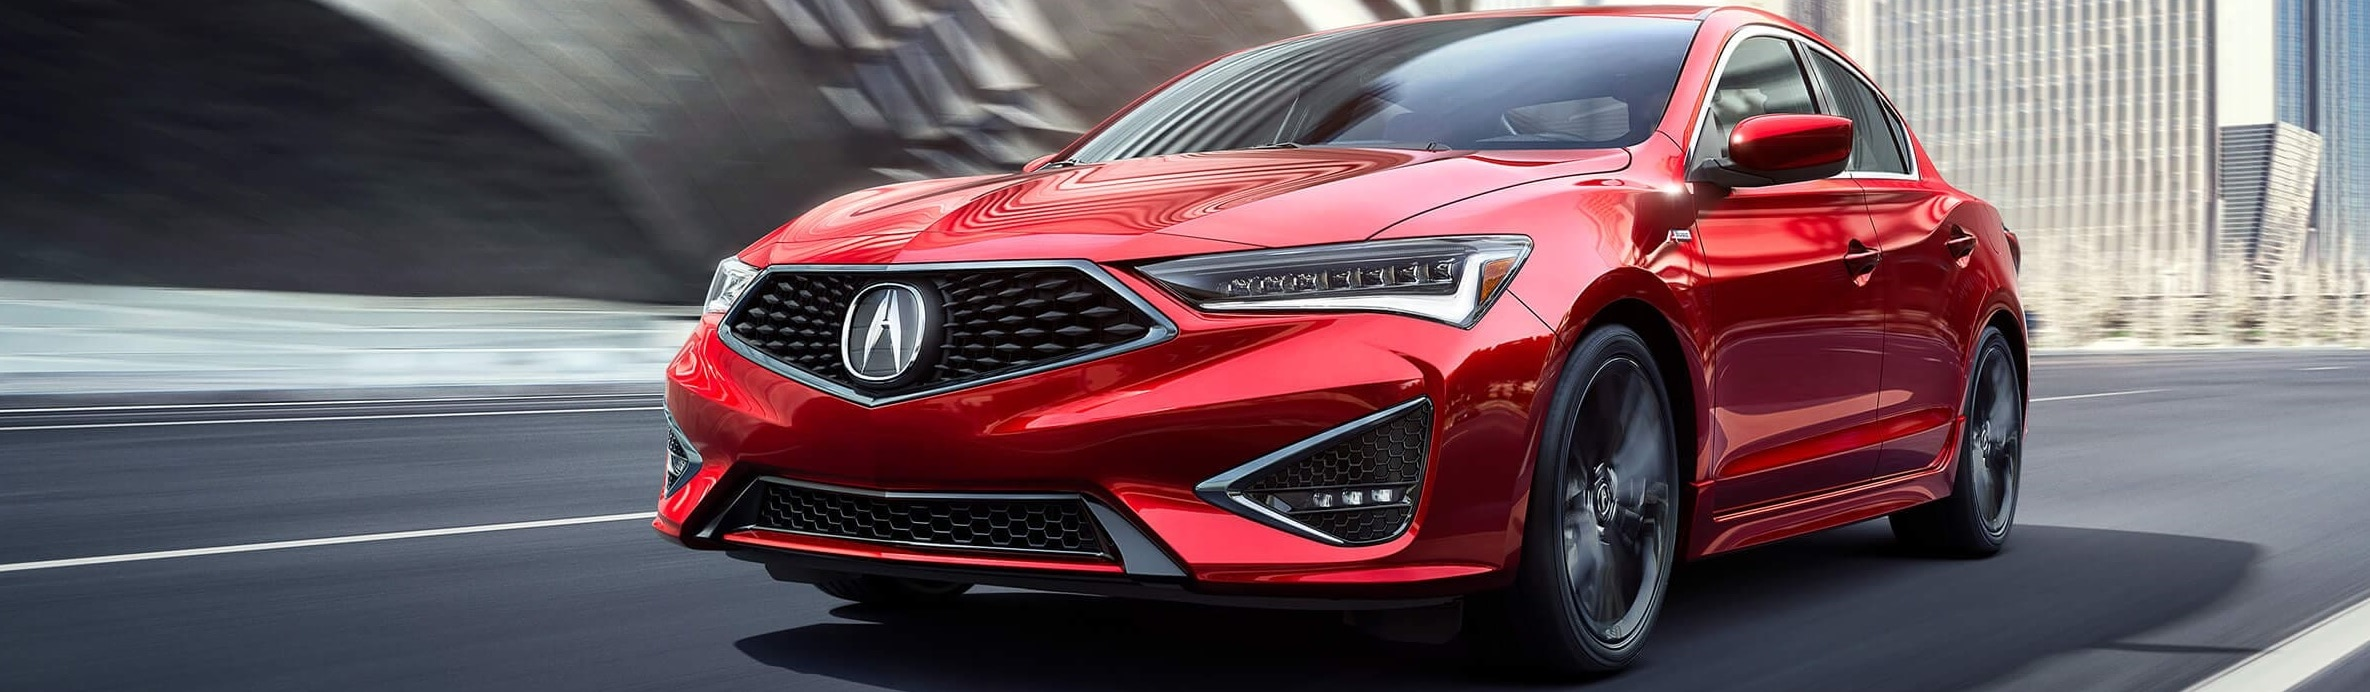 2021 Acura ILX For Sale in Maple, Ontario